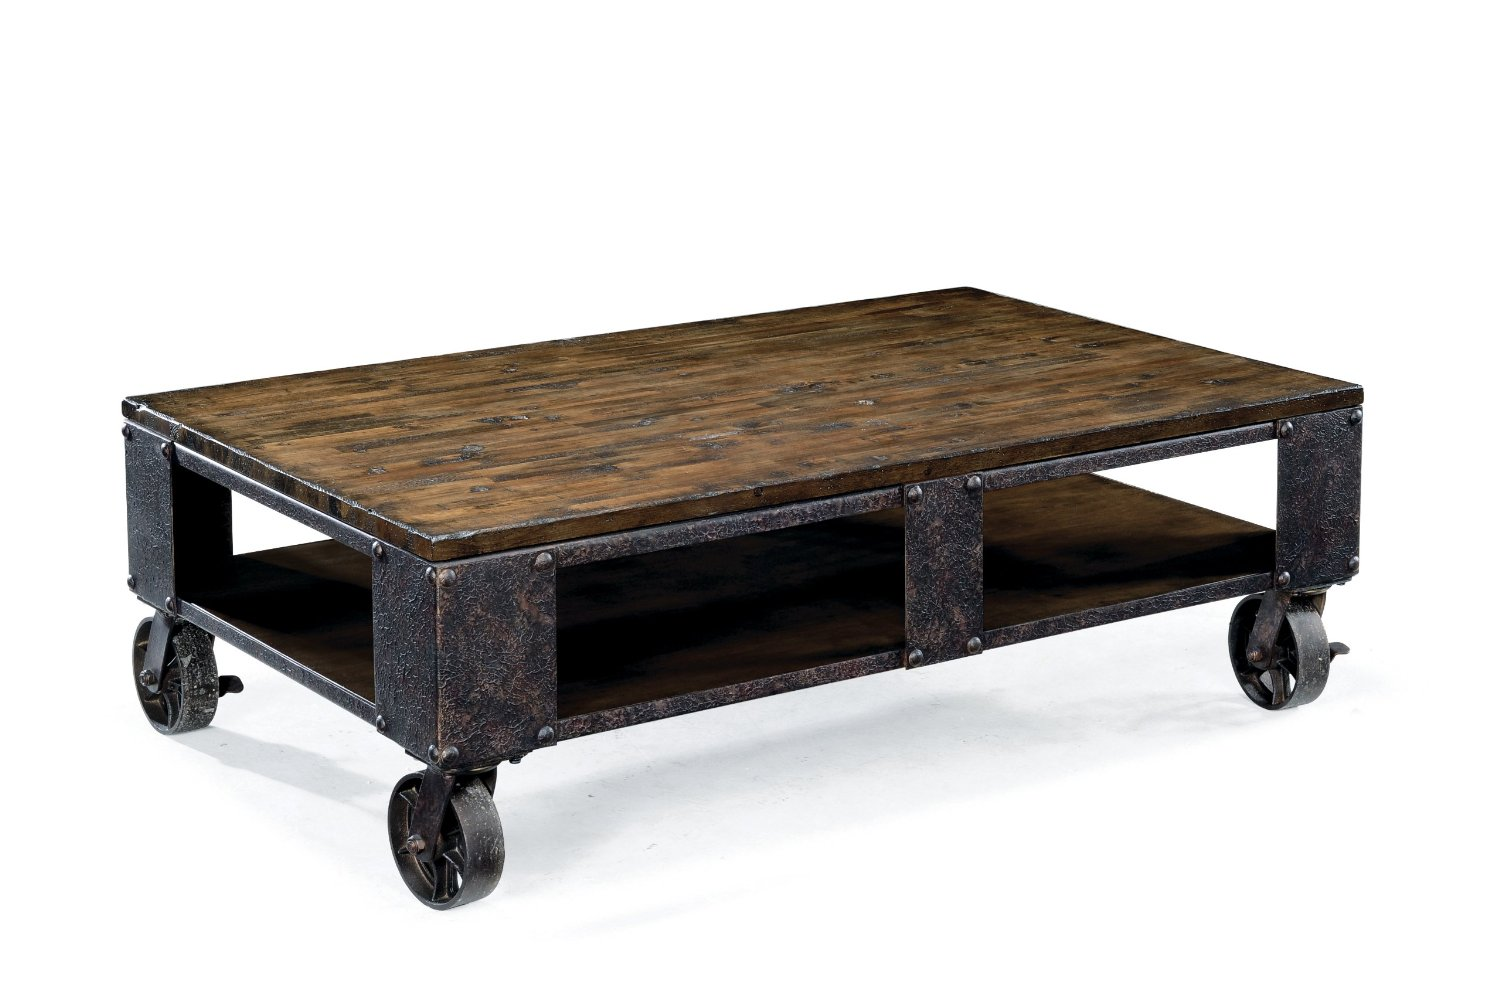 Total Fab Modern Industrial Warehouse Railroad Cart Coffee Tables With Caster Wheels